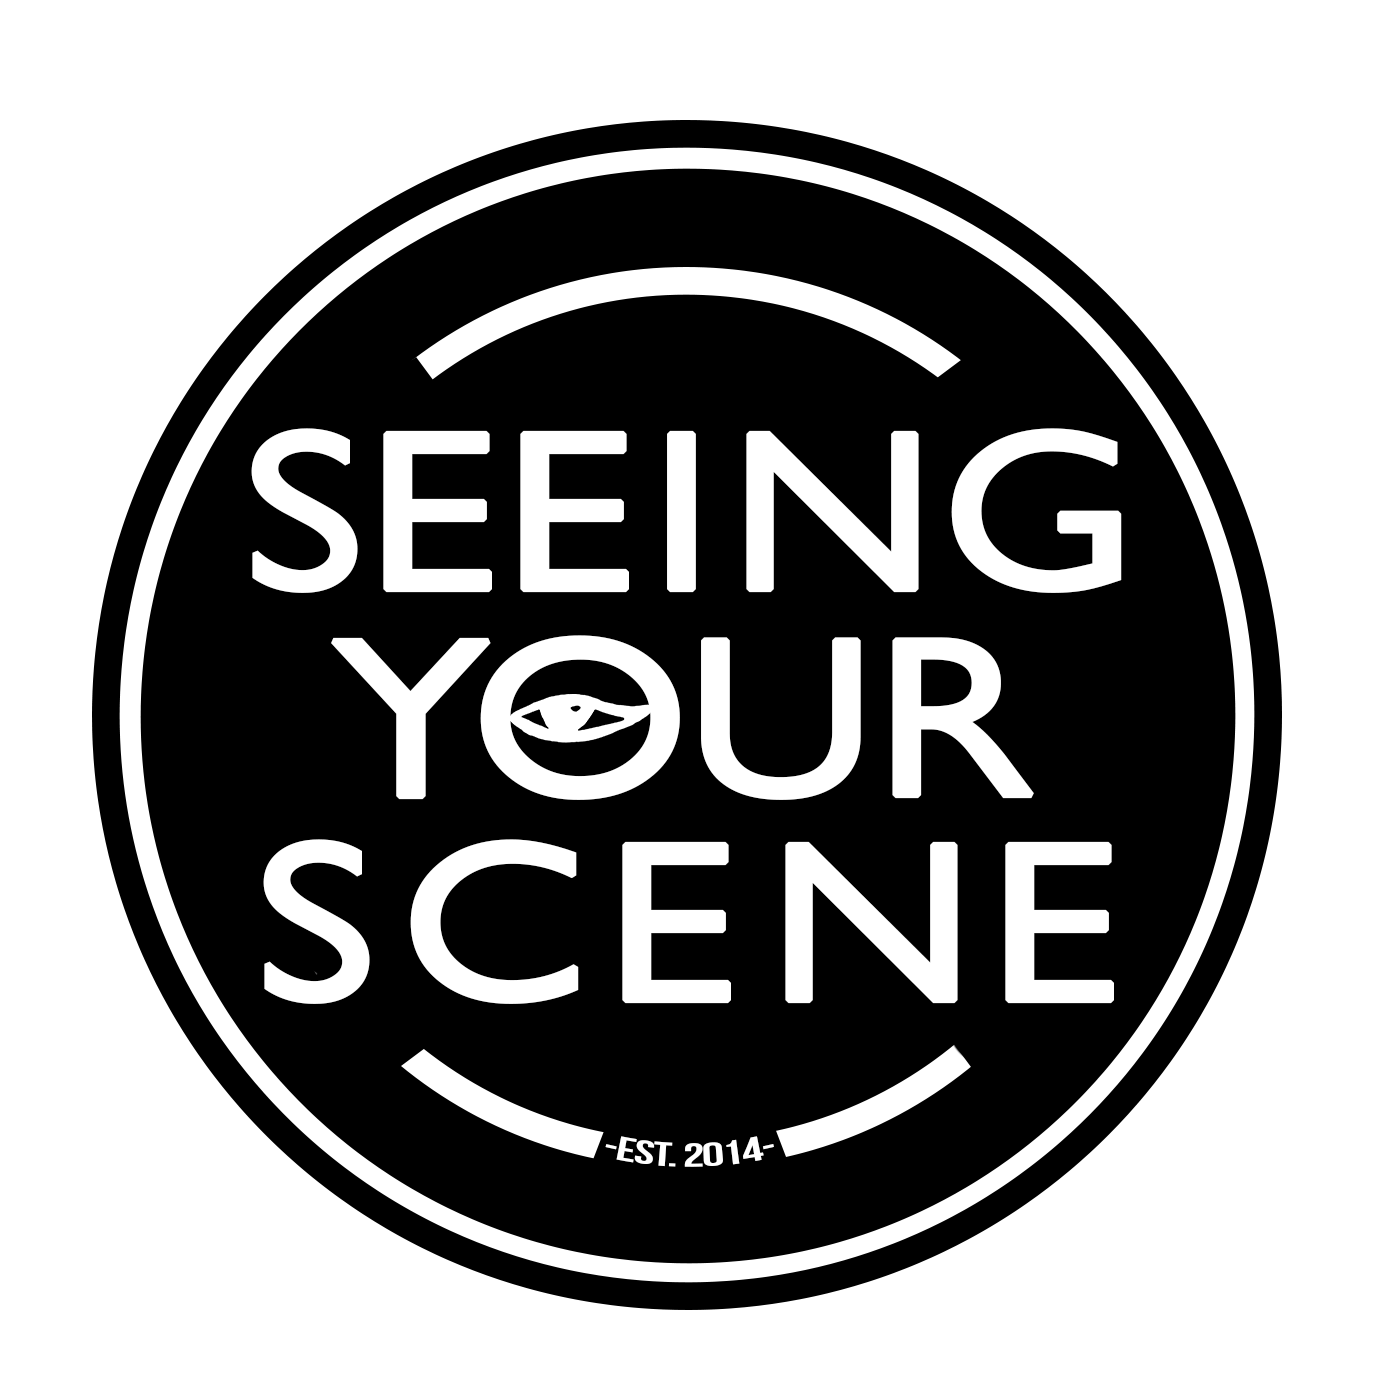 Seeing Your Scene